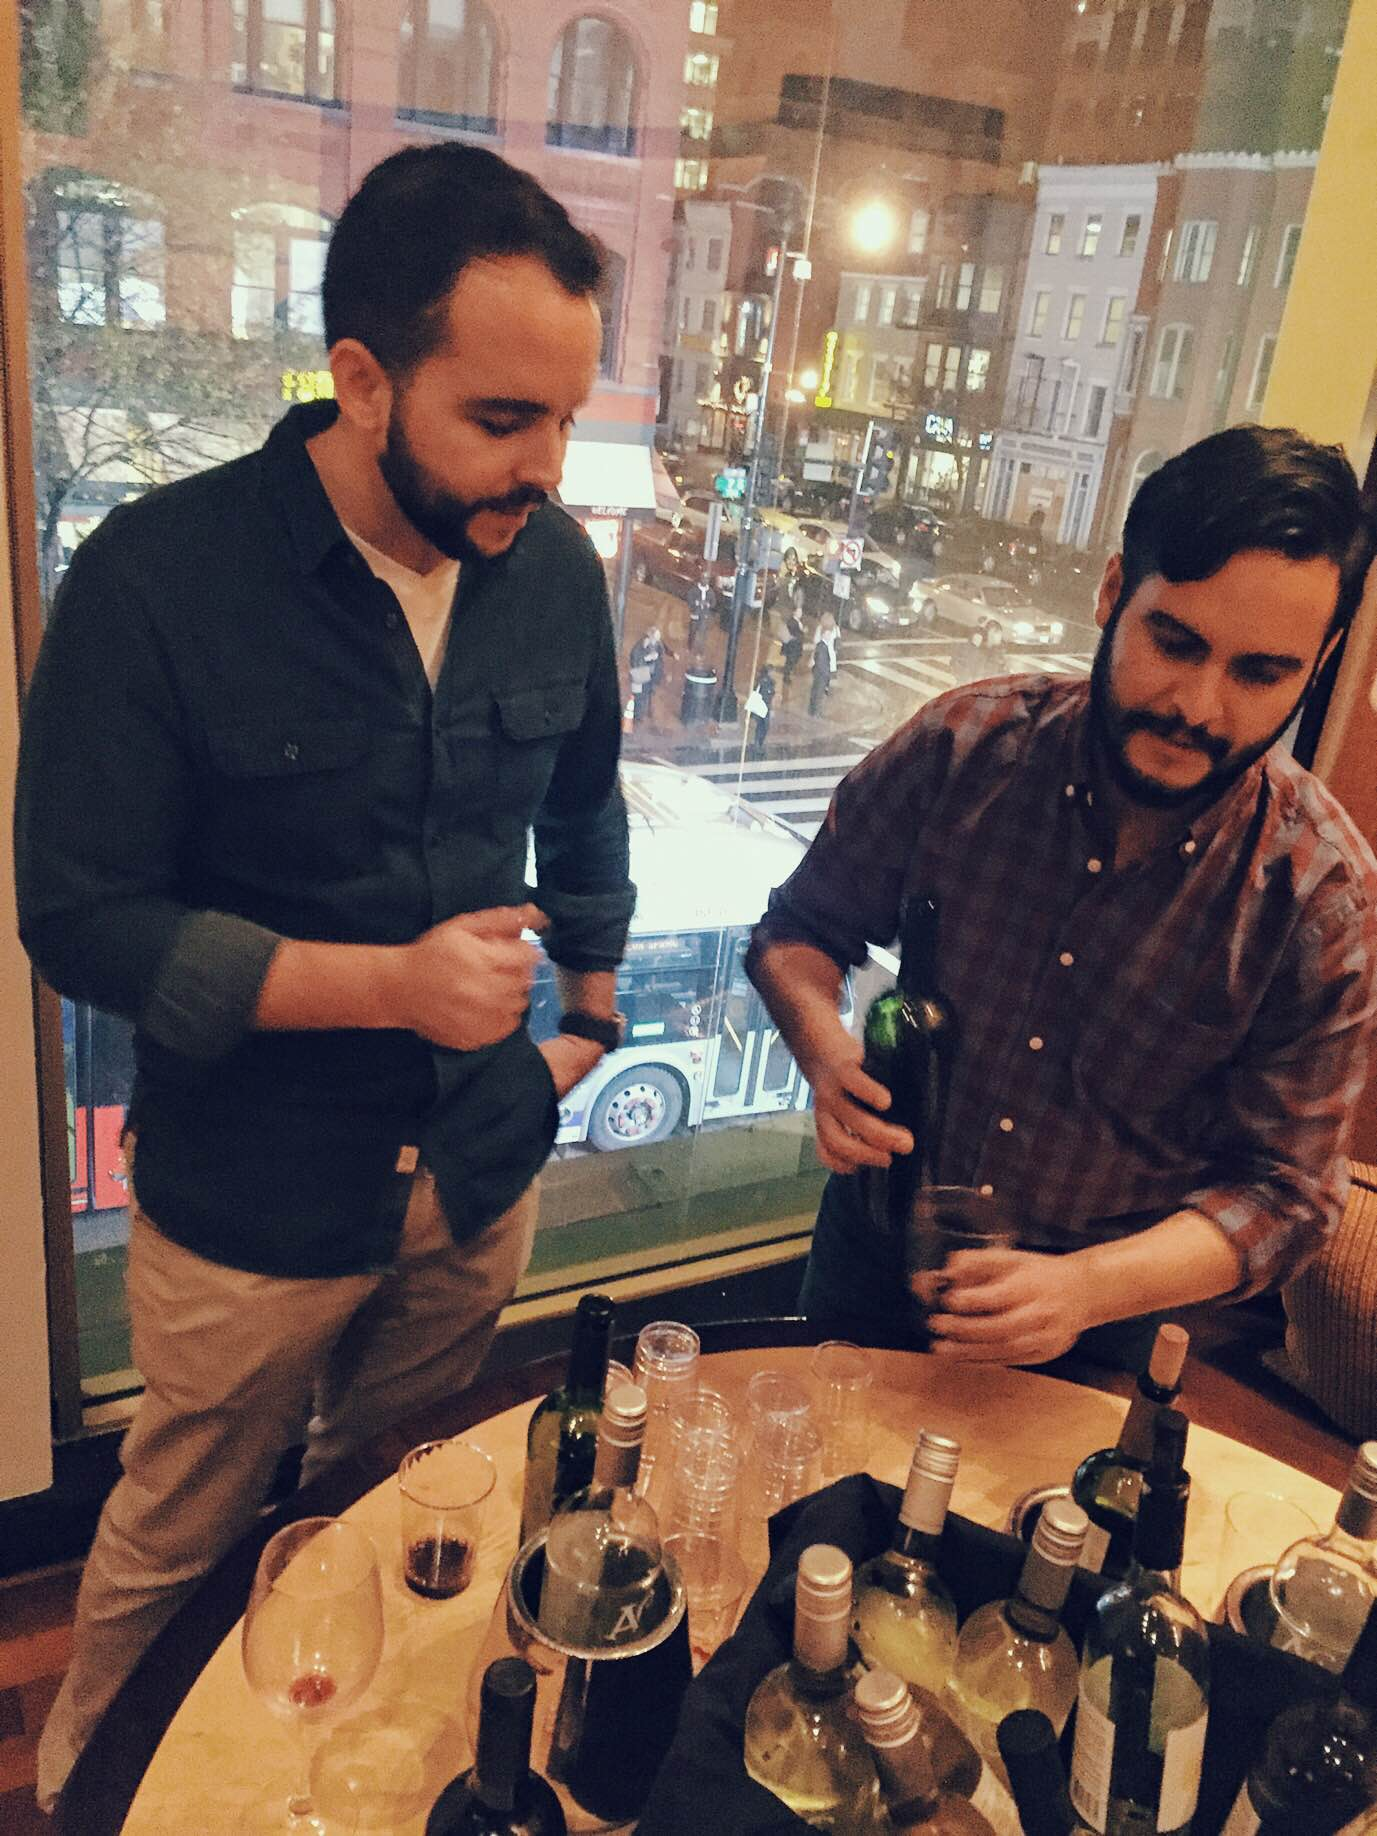 Pedro (left) and Julio (right) pouring and discussing wines with guests at an event hosted by the Greater Washington Hispanic Chamber of Commerce at Zengo restaurant this month.